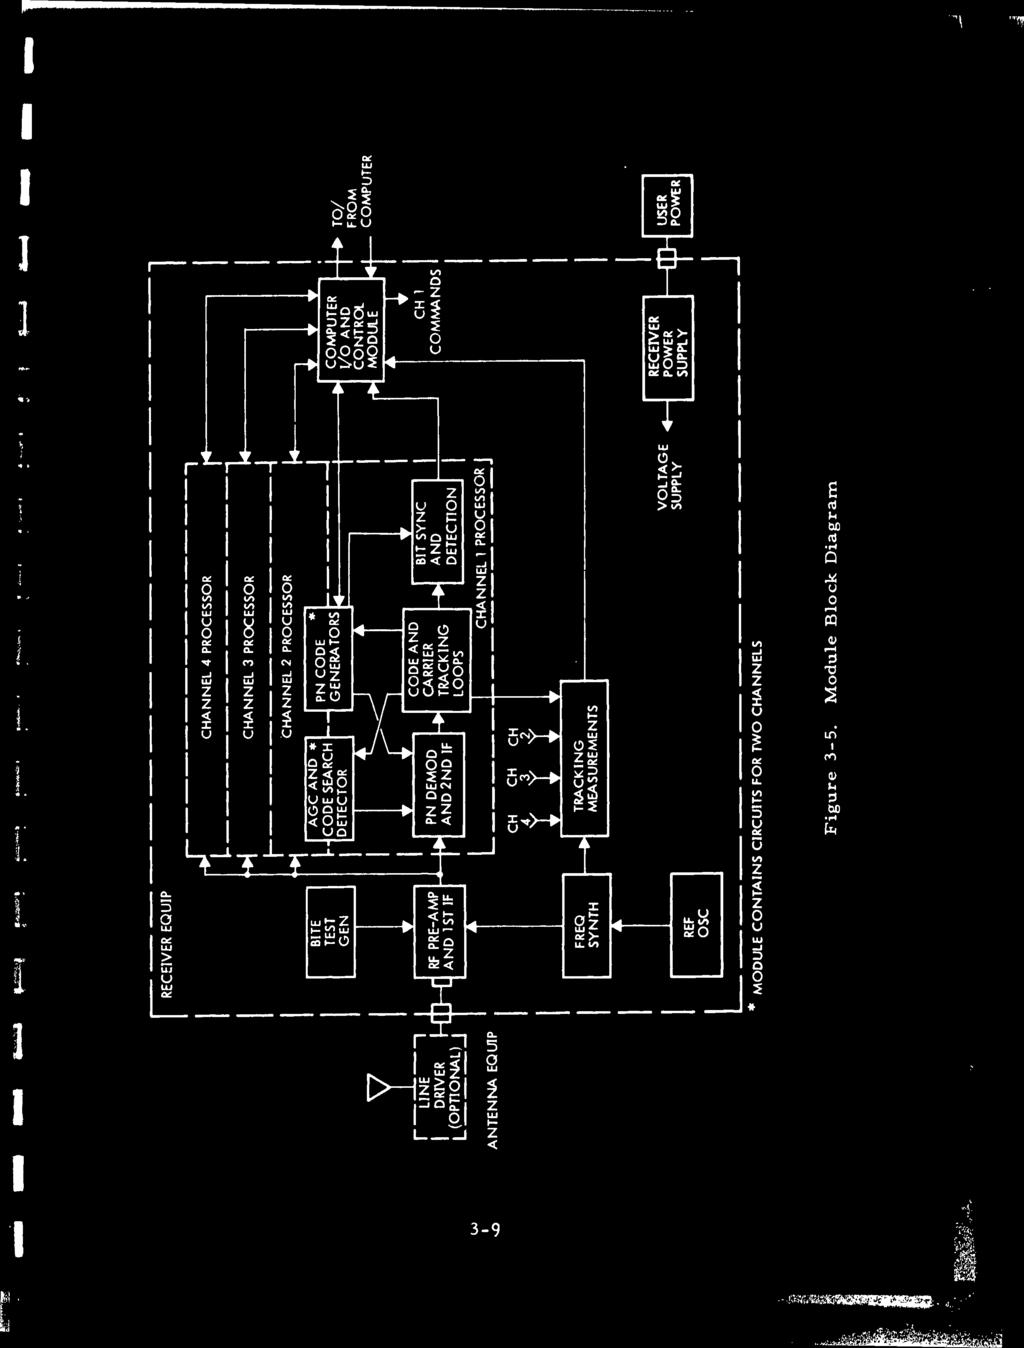 Unclassified Ad Number Limitation Changes Pdf Emp Slot Jammer Schematics Moreover Pulse Generator Schematic Mm X Yw Agc An Code Sea Detector Art Q Carref Track Loops I Y